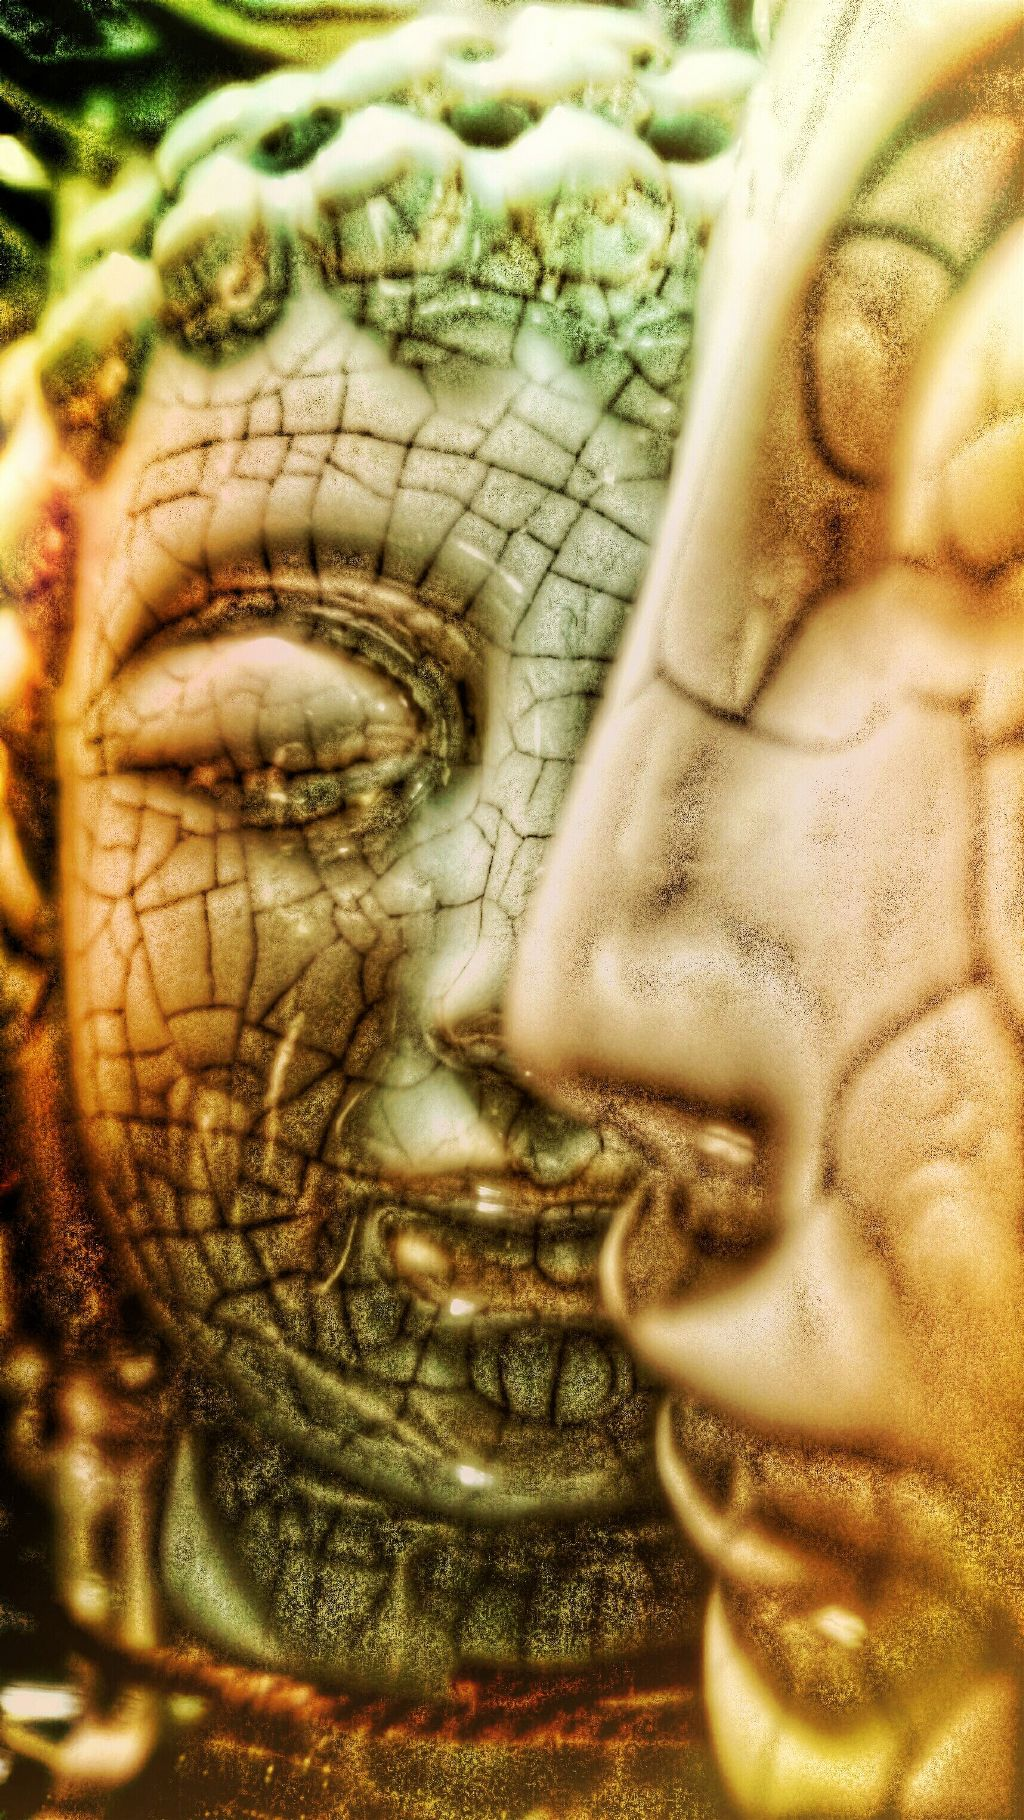 Look and look again #colorful #emotions #hdr #photography #light #texture #cracked #look #statue #head #perspective  #buddah #perspective